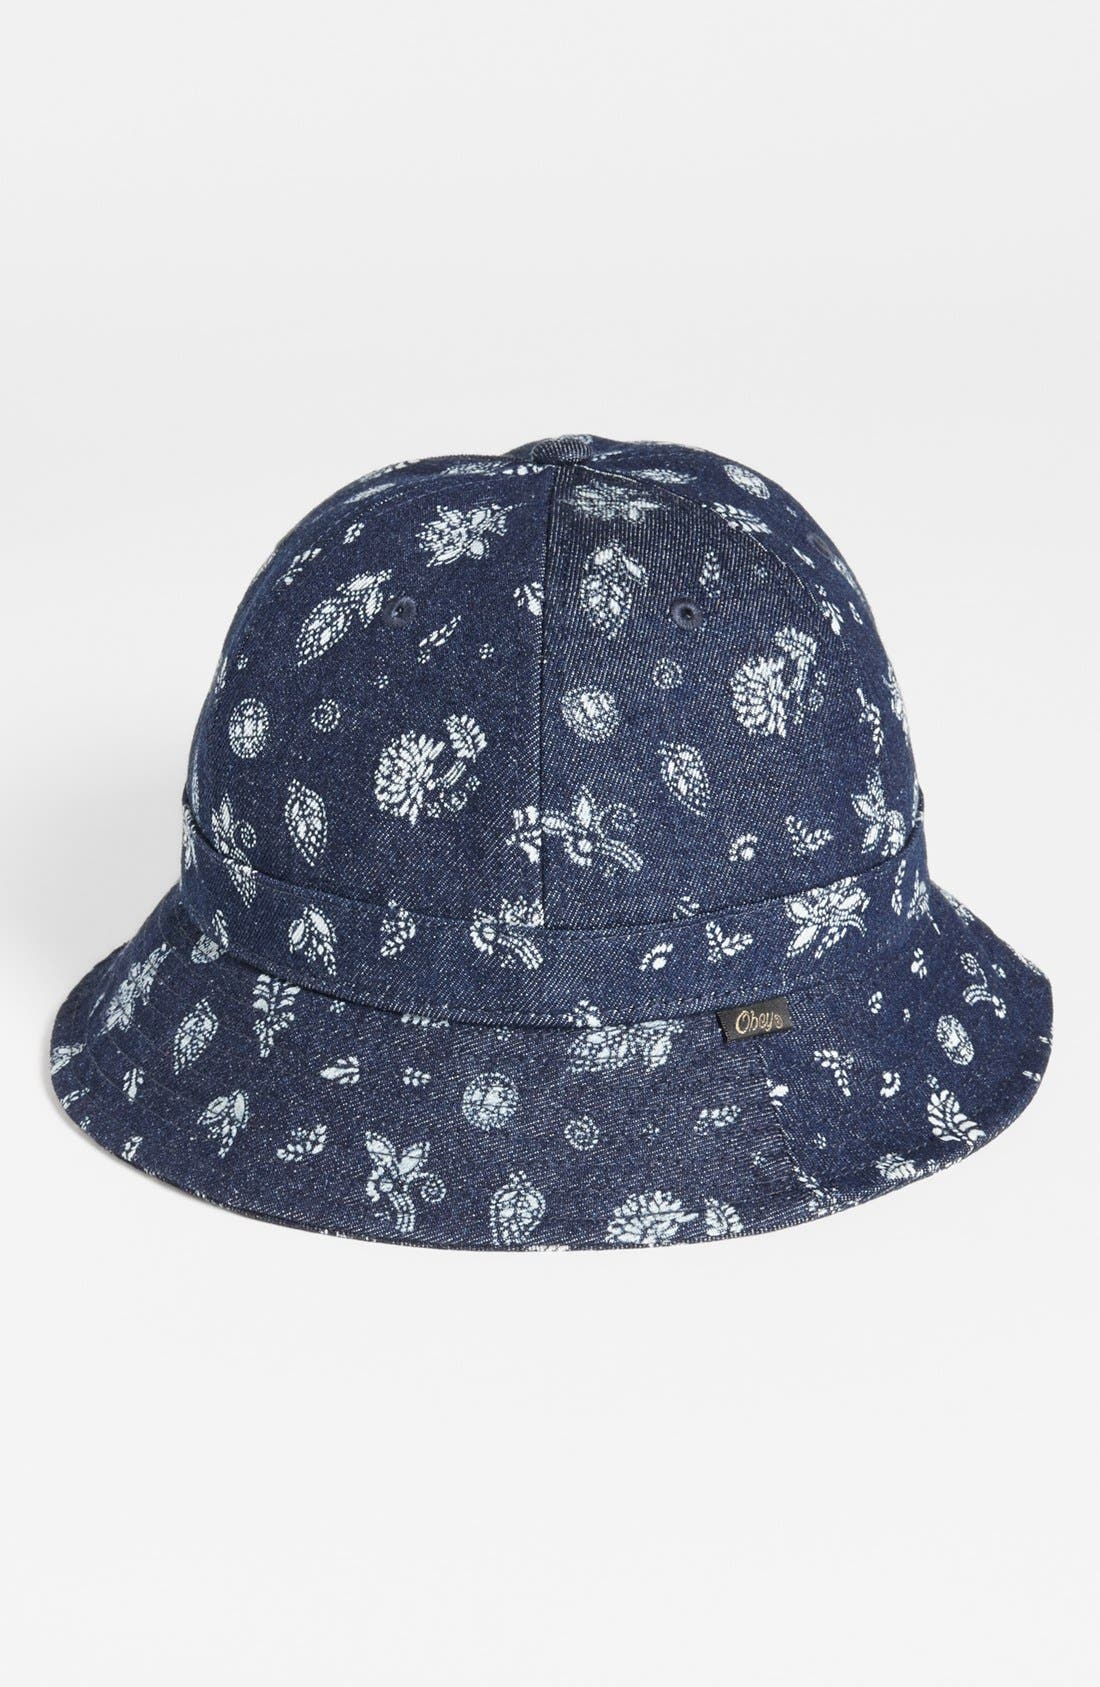 Alternate Image 1 Selected - Obey Bucket Hat